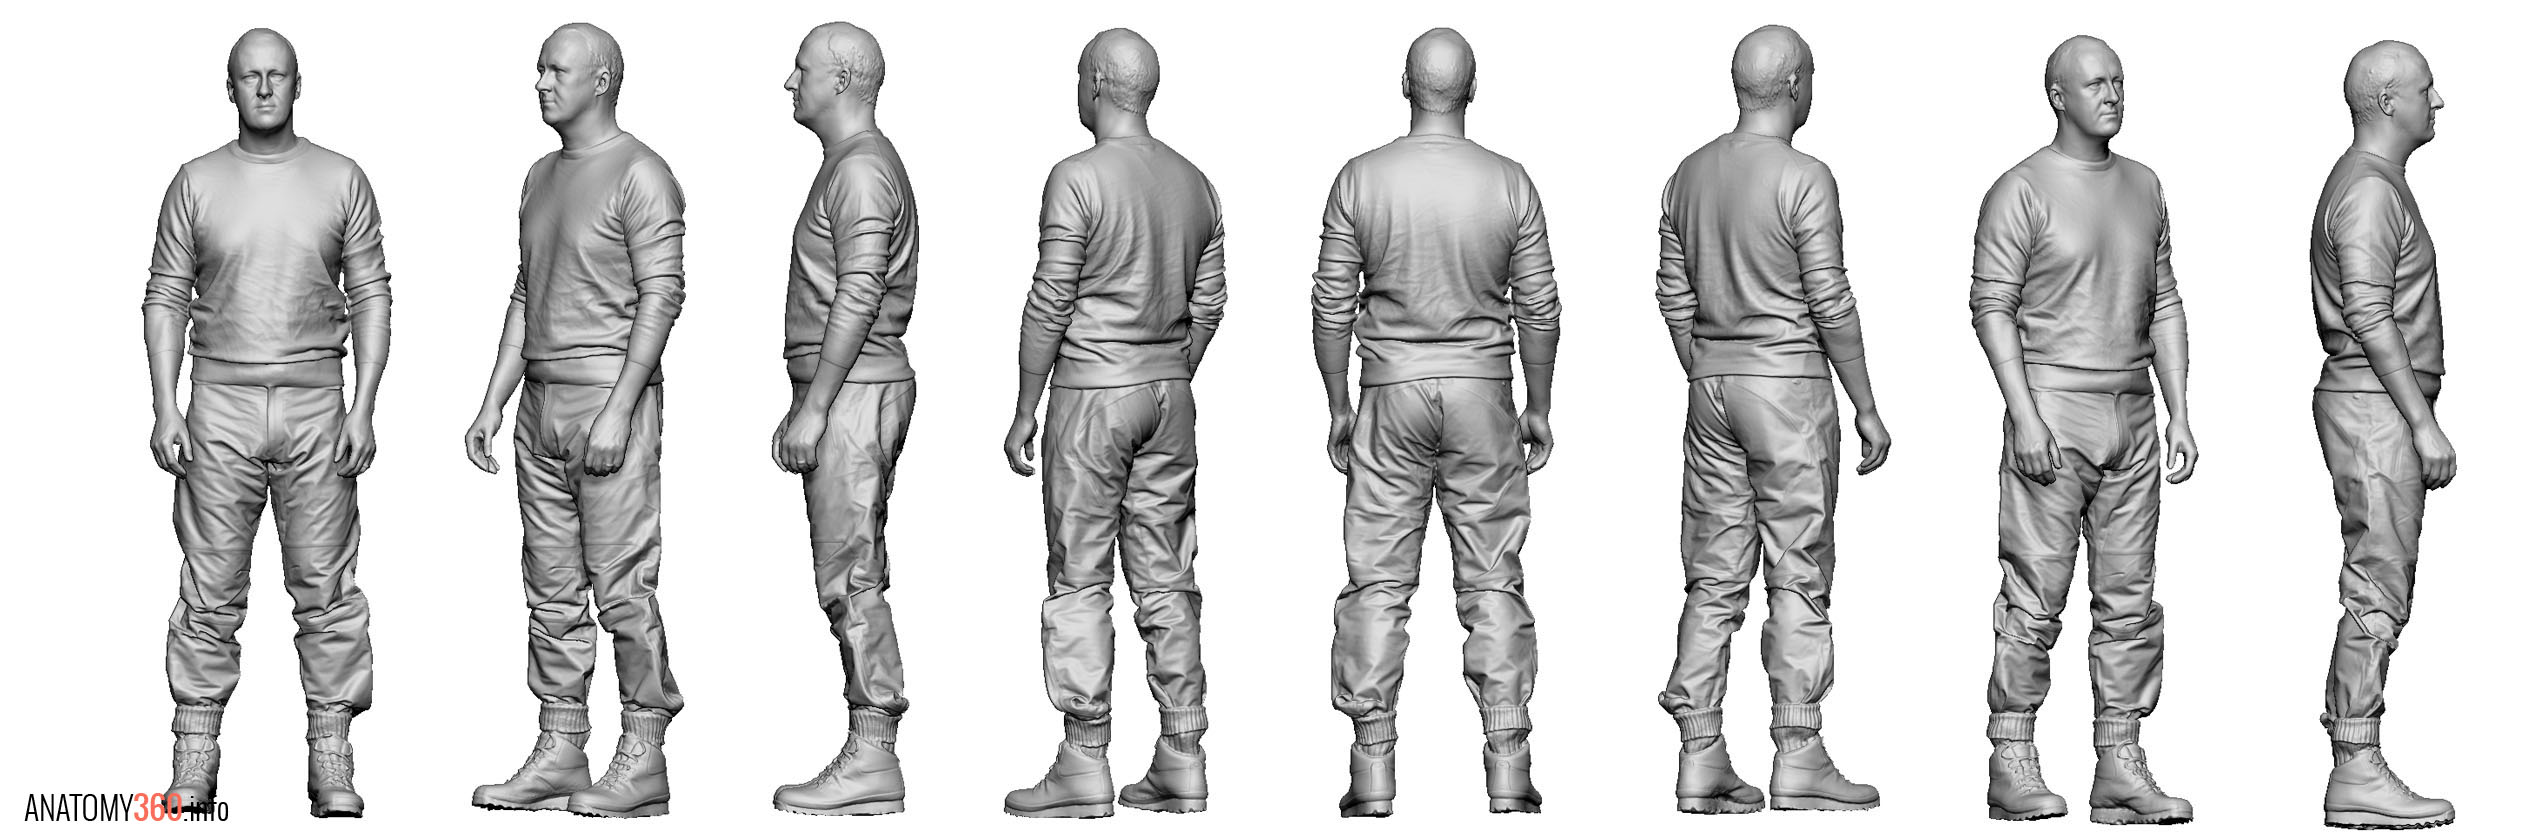 Male02_Walking_Arms_Down_LineUp